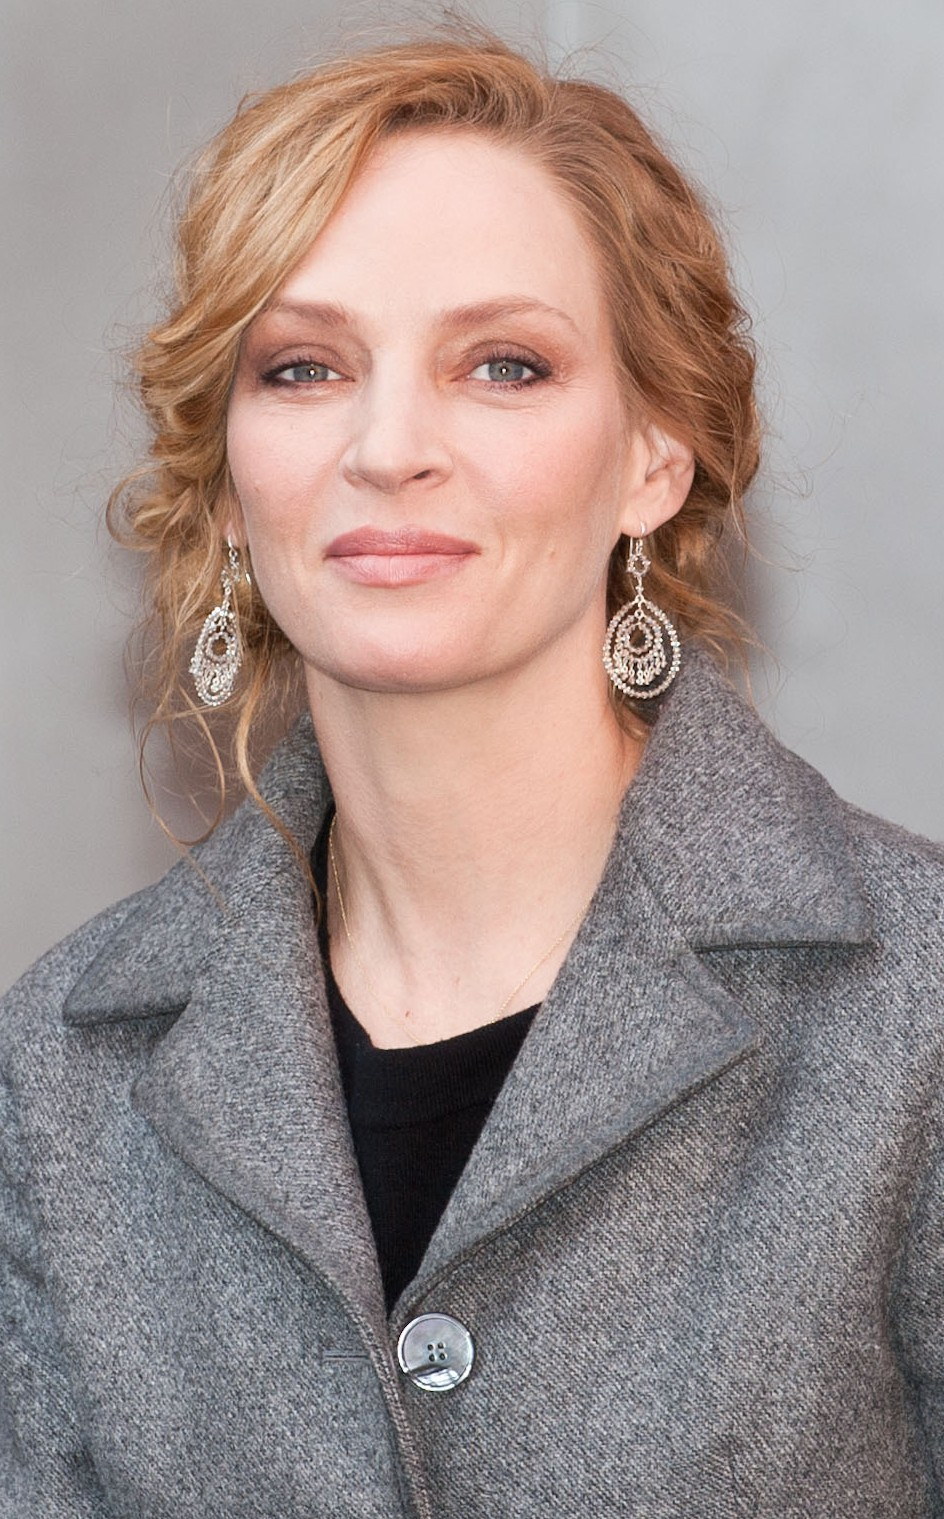 Uma Thurman, fot. Siebbi, CC 3.0, Wikimedia Commons